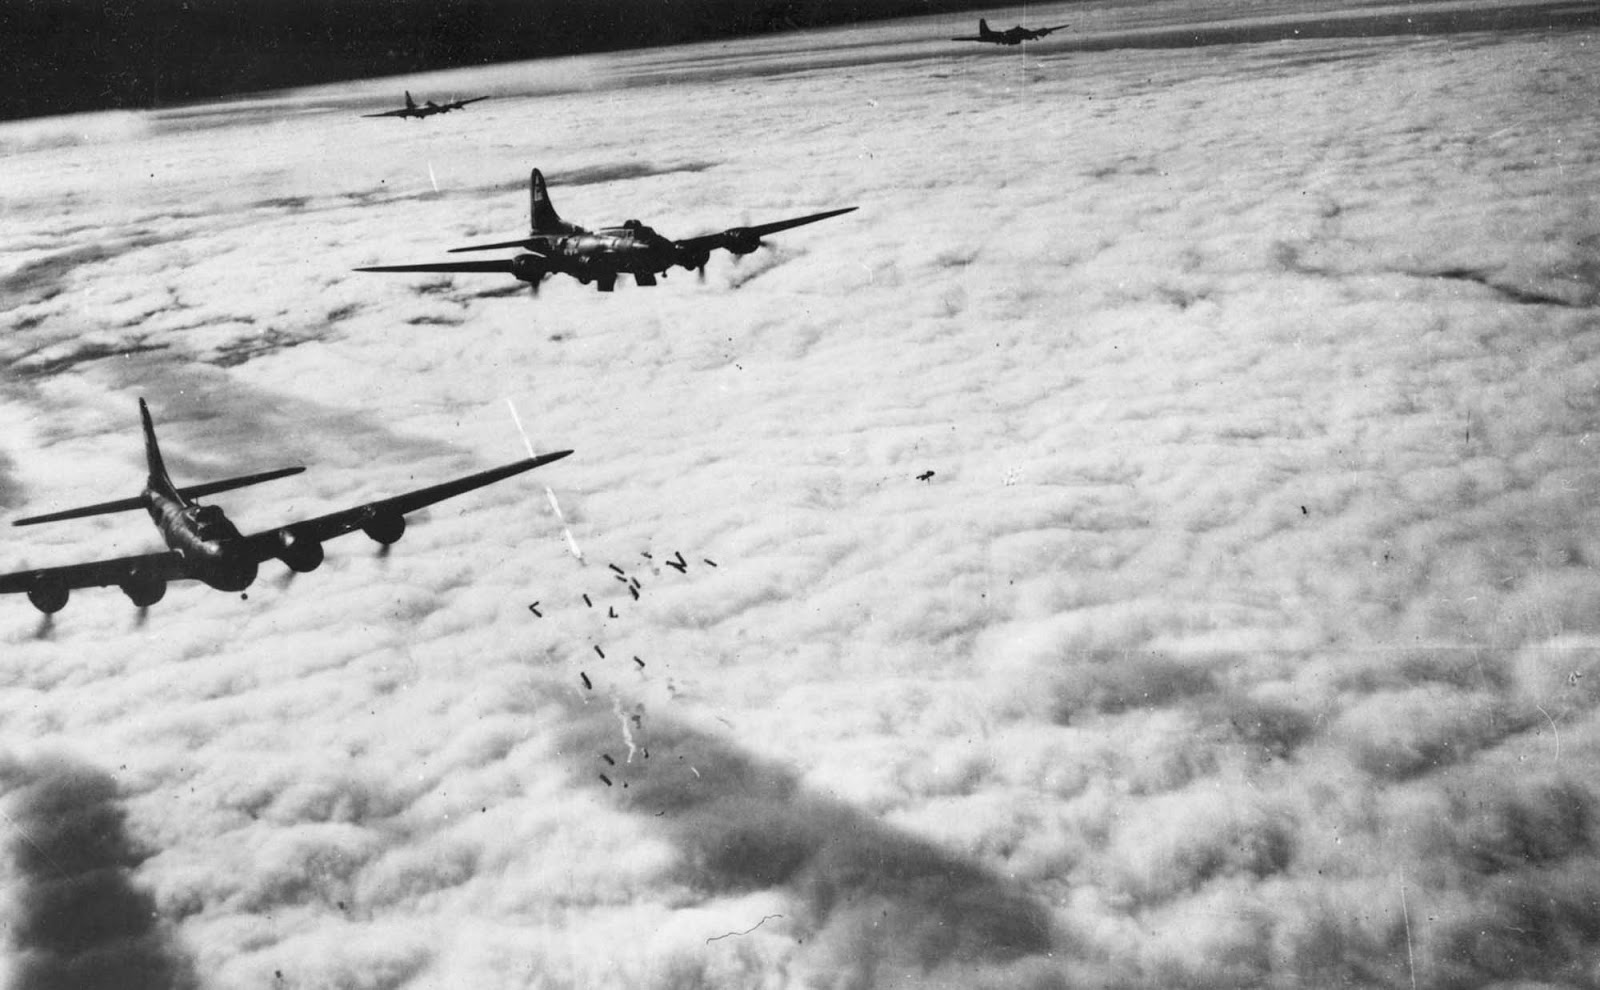 Boeing B-17F radar bombing through clouds: Bremen, Germany, November 13, 1943.